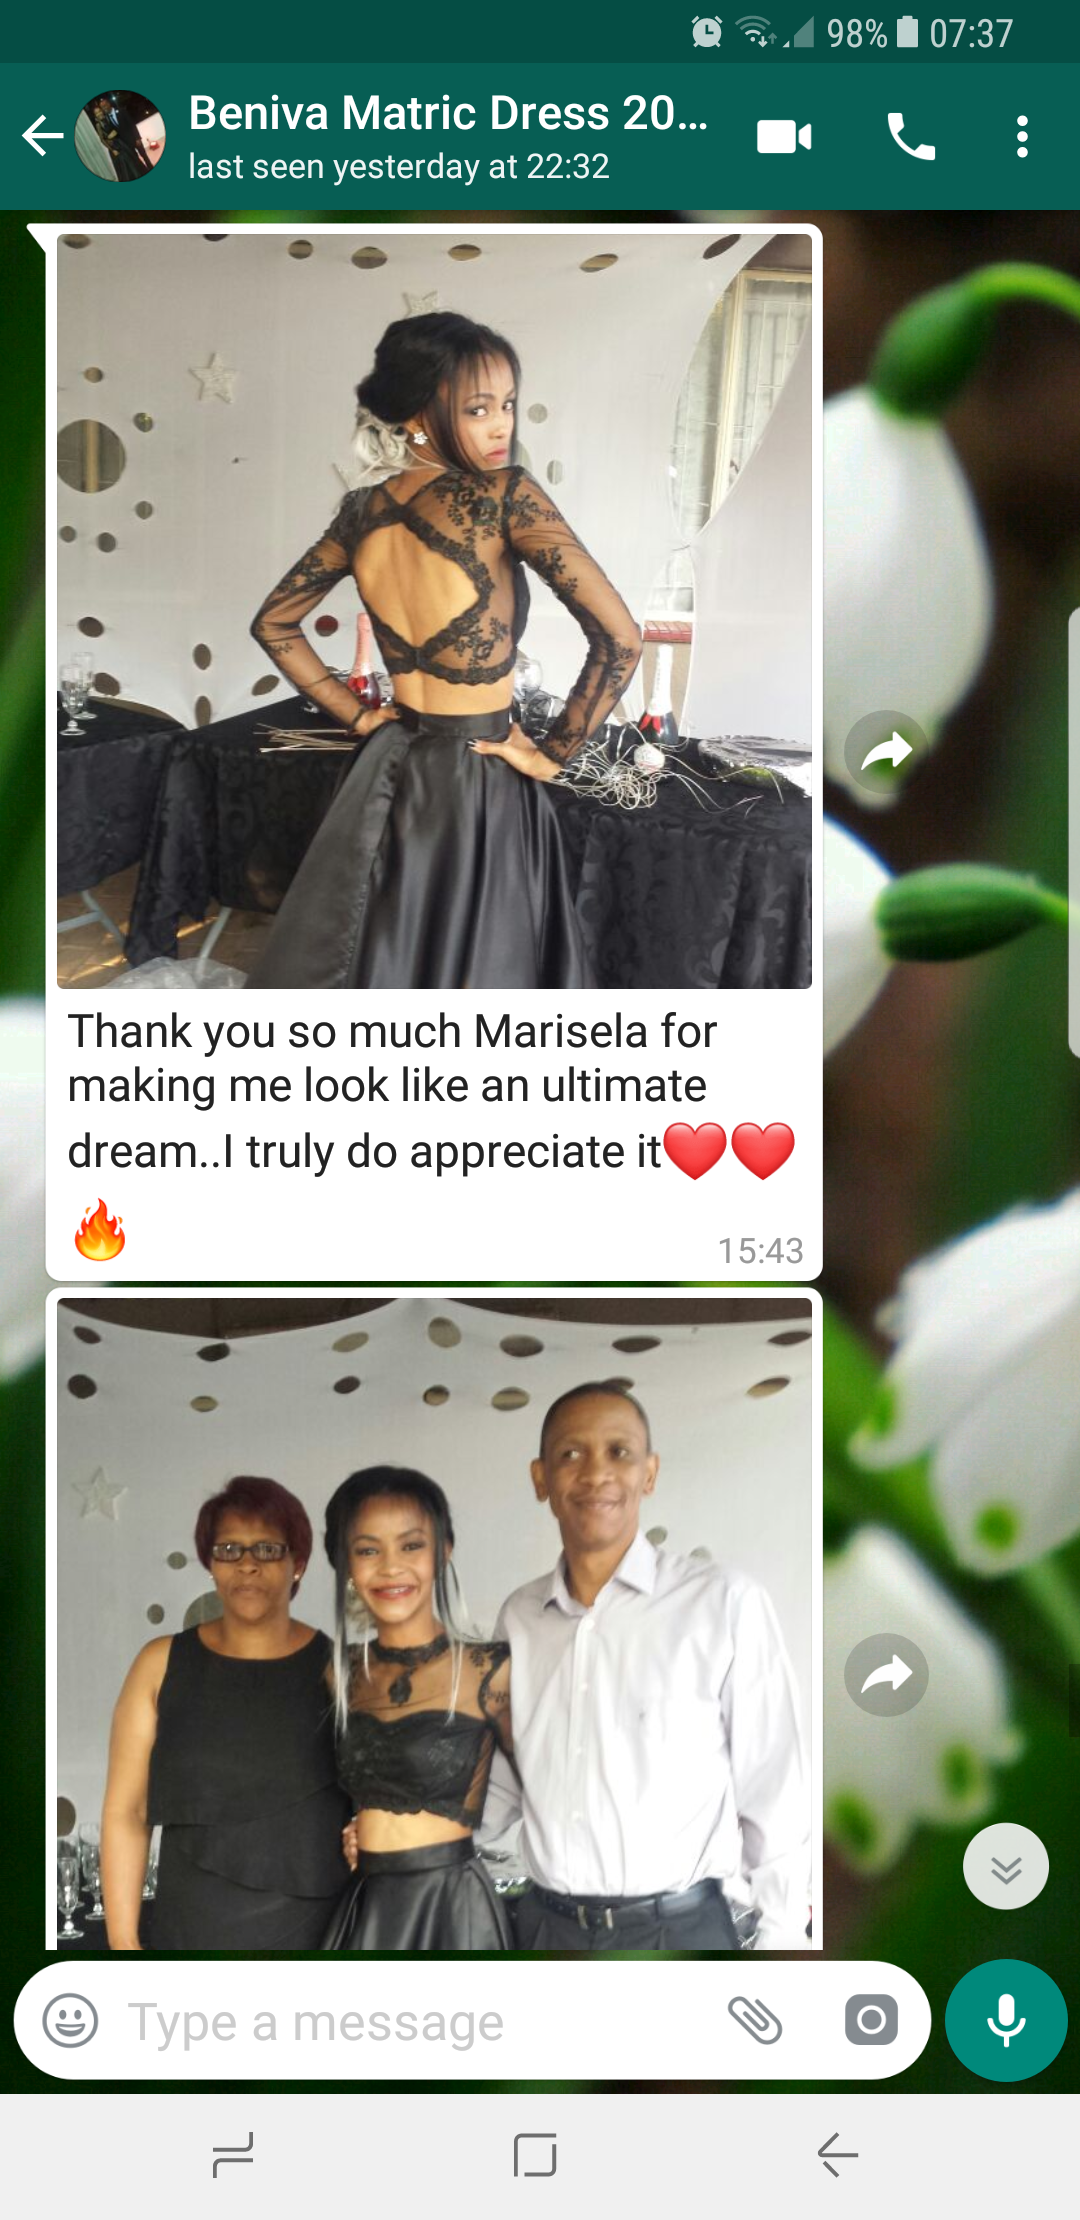 Beniva, a private client of Marisela Veludo's gives feedback for her black lace, open back, evening dress which was custom designed and made by Marisela Veludo. To view all of Marisela's reviews & feedback, you can go to feedback. To see more of Marisela's work, you can go to Passion4Fashion.